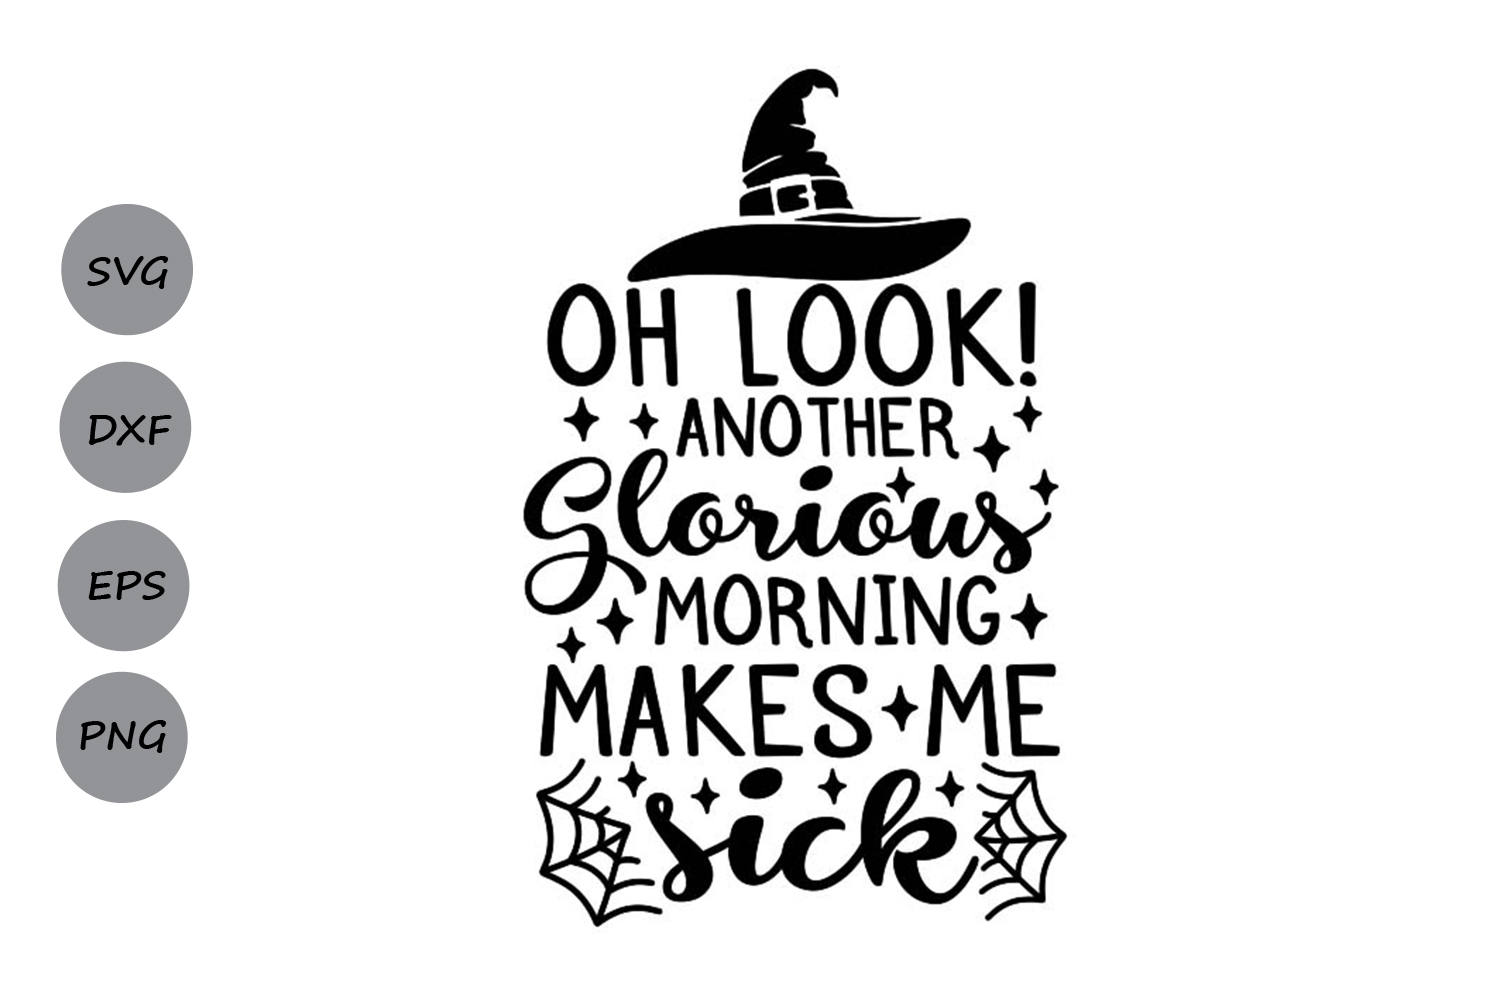 Download Free Look Another Glorious Morning Graphic By Cosmosfineart for Cricut Explore, Silhouette and other cutting machines.